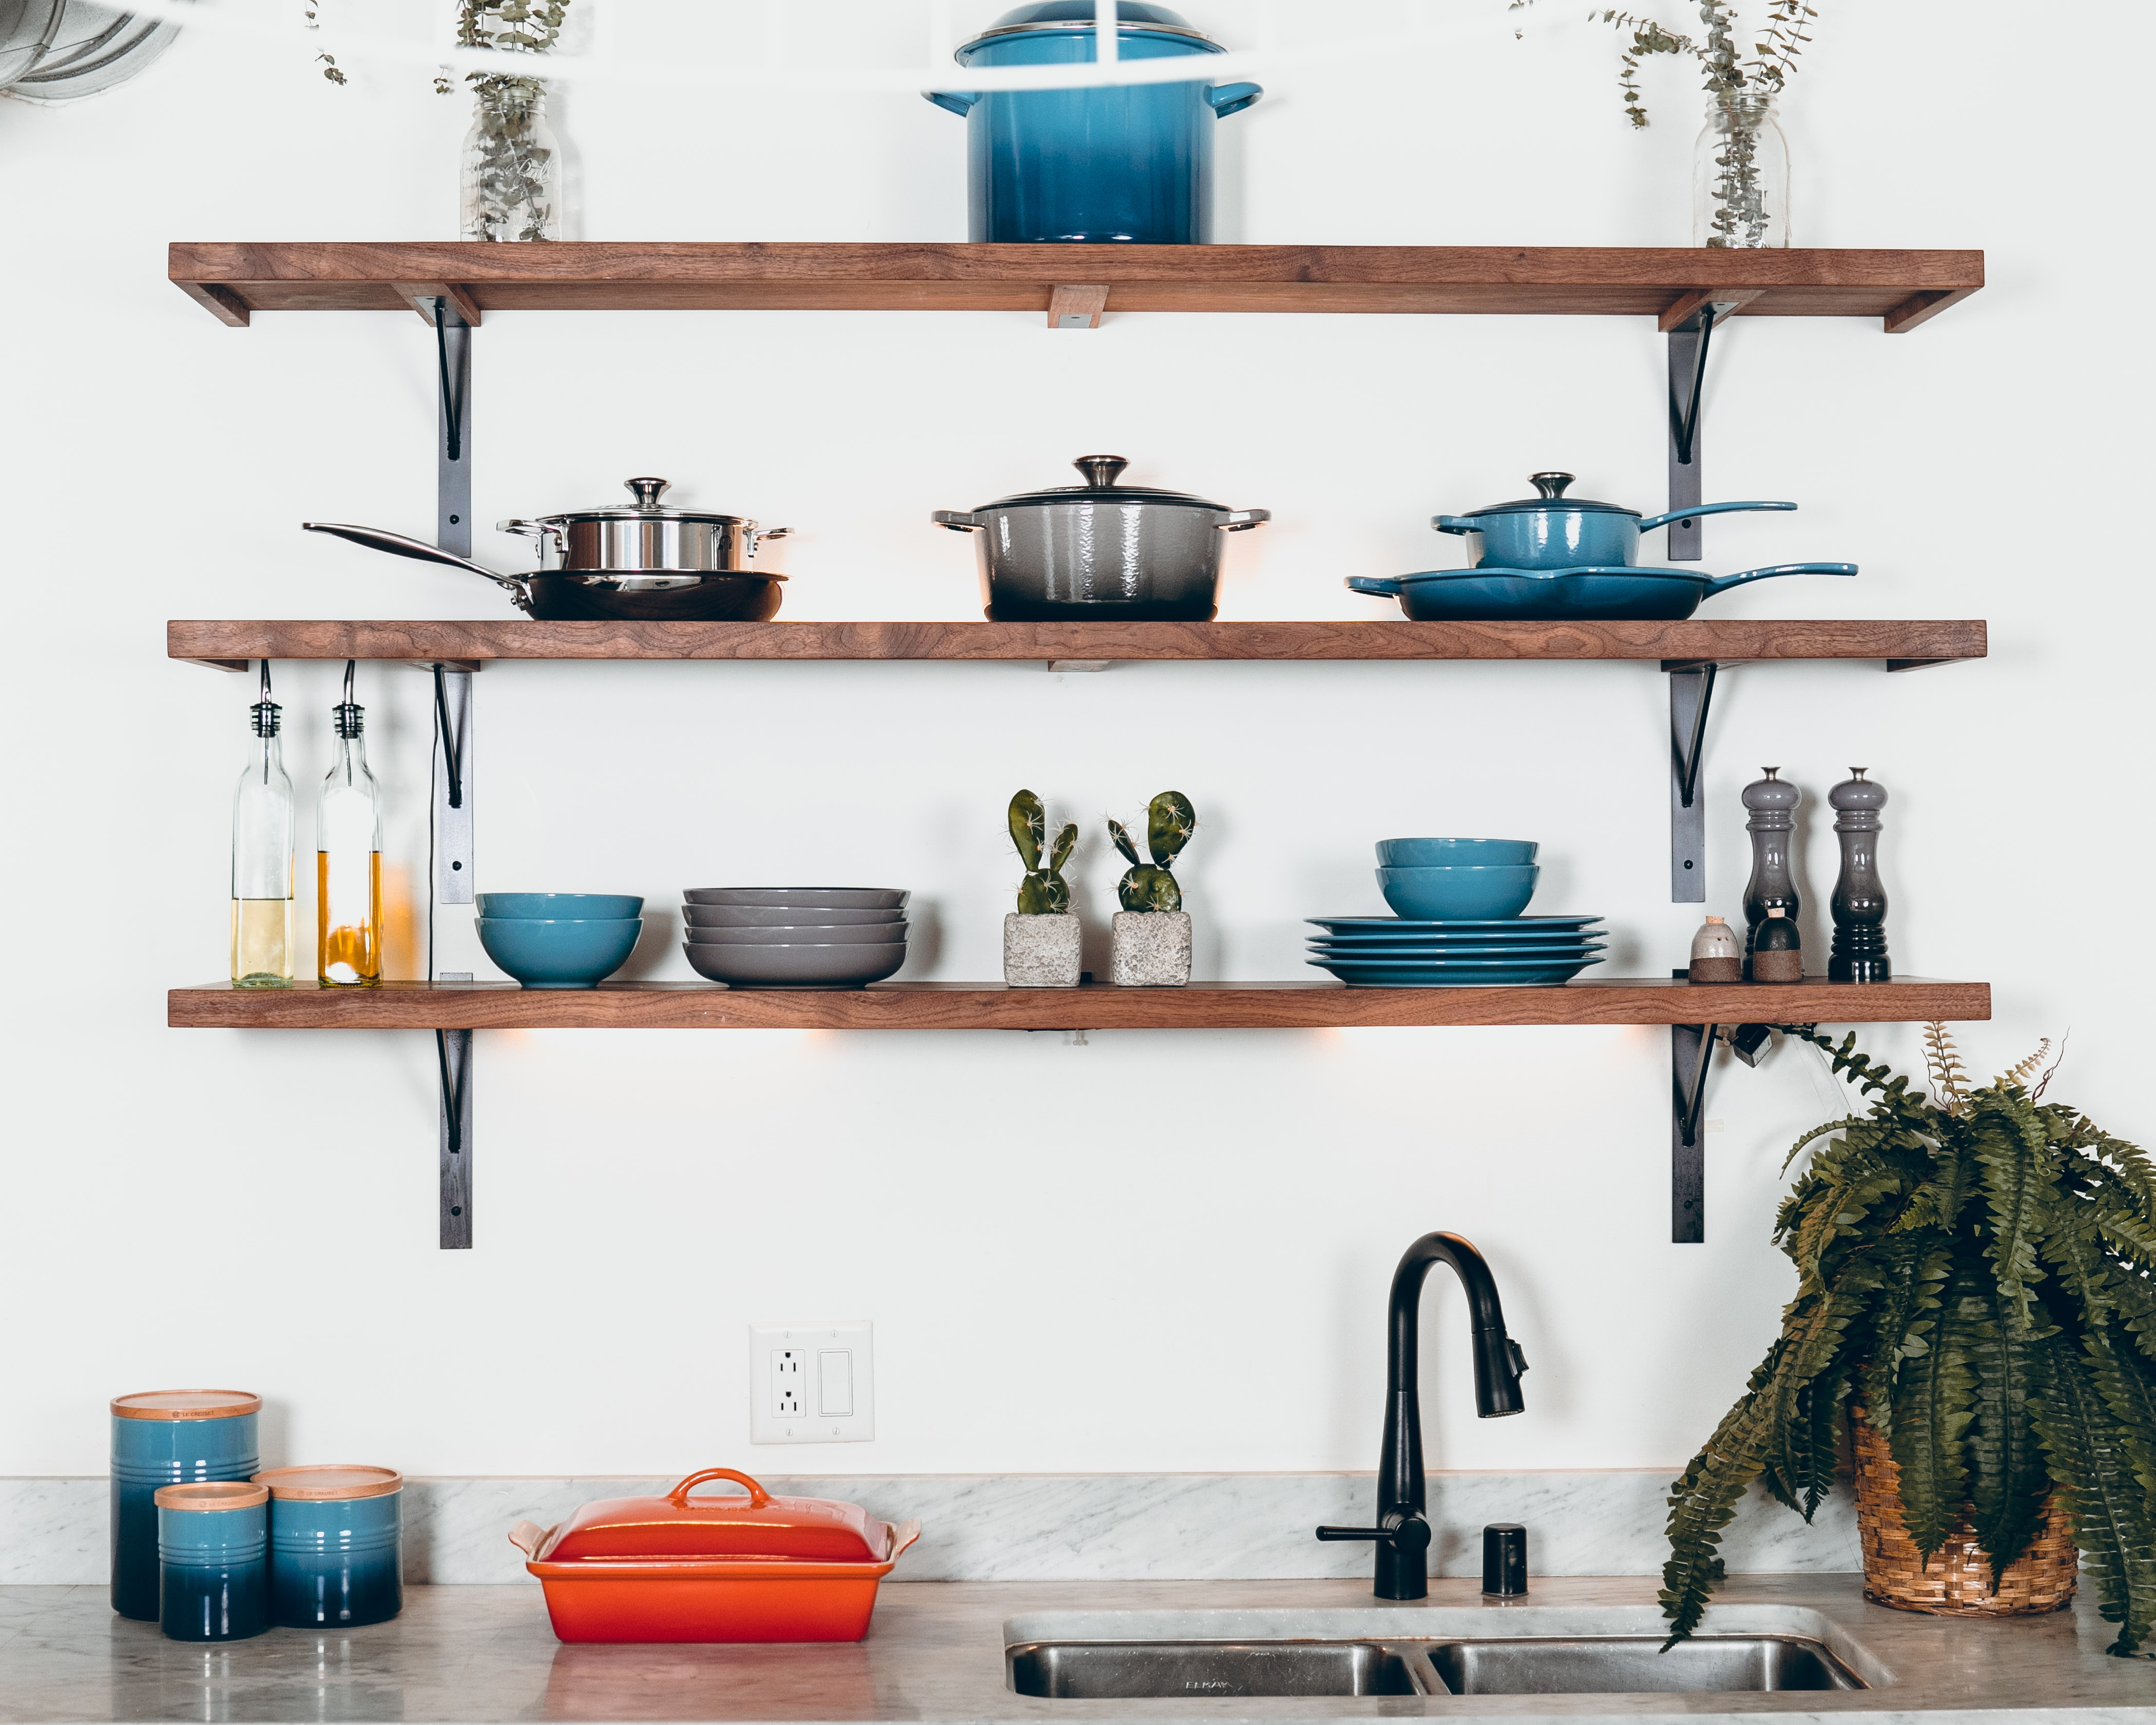 a kitchen counter and three shelves displaying colorful ceramic kitchenware